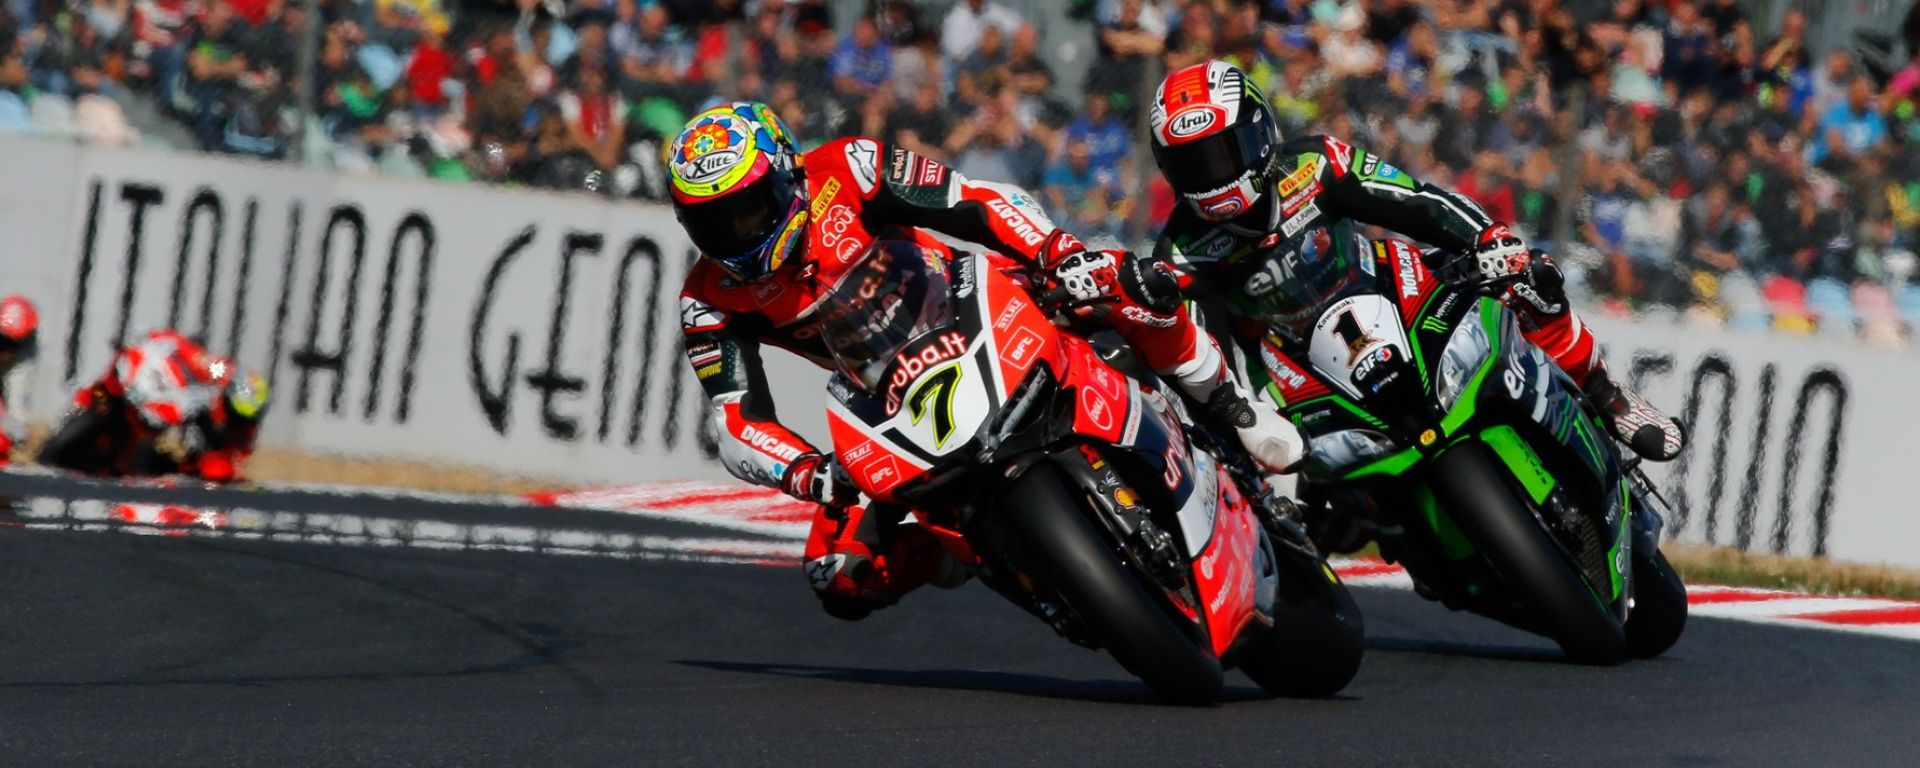 Superbike 2016: le pagelle di Magny Cours